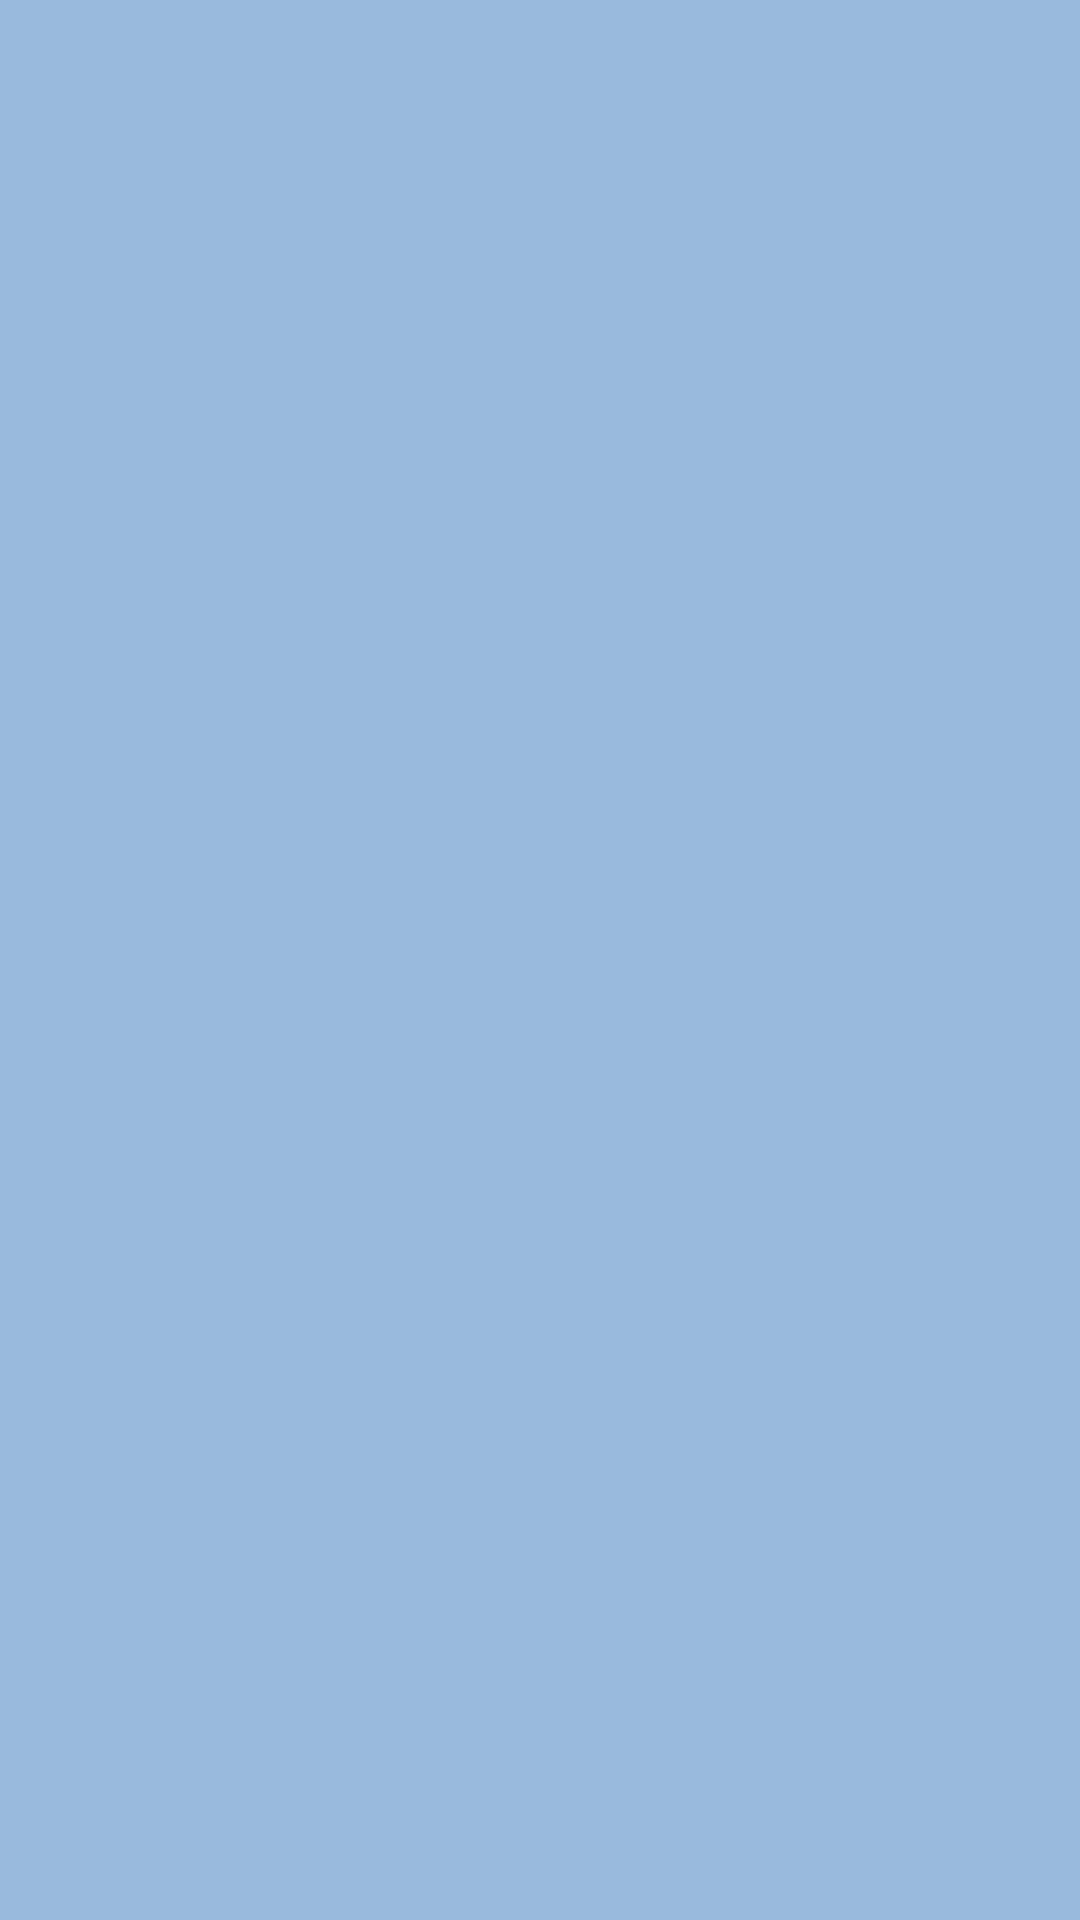 1080x1920 Carolina Blue Solid Color Background